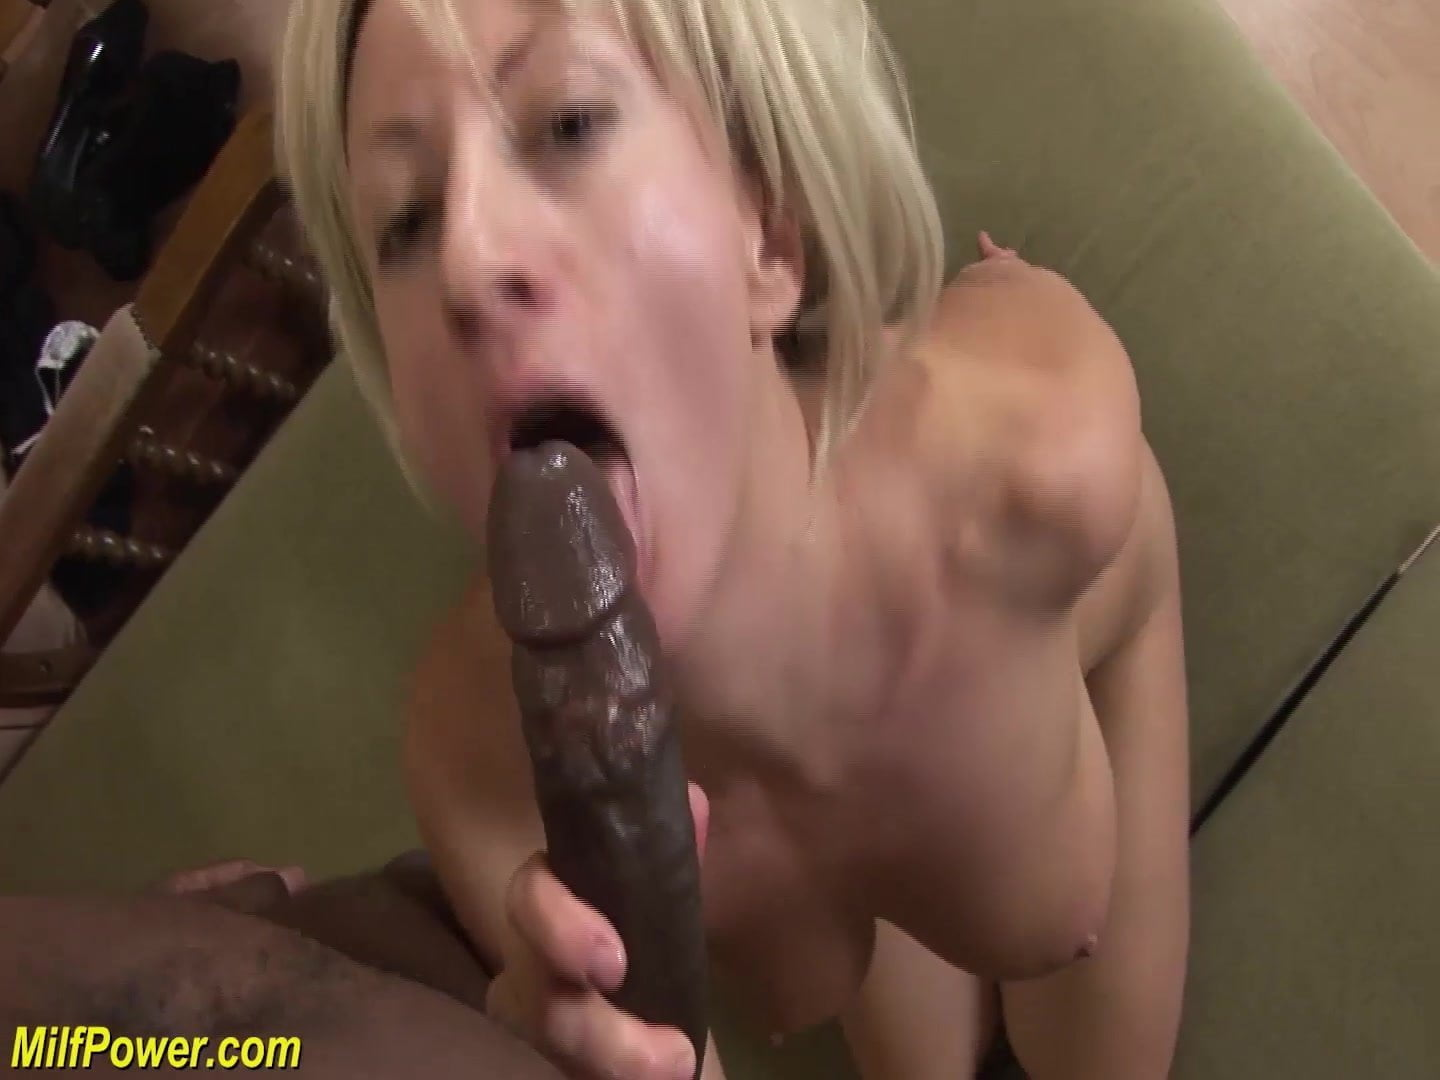 Busty Milf First Time Bbc Anal Fucked, Hd Porn 3A Xhamster-8868